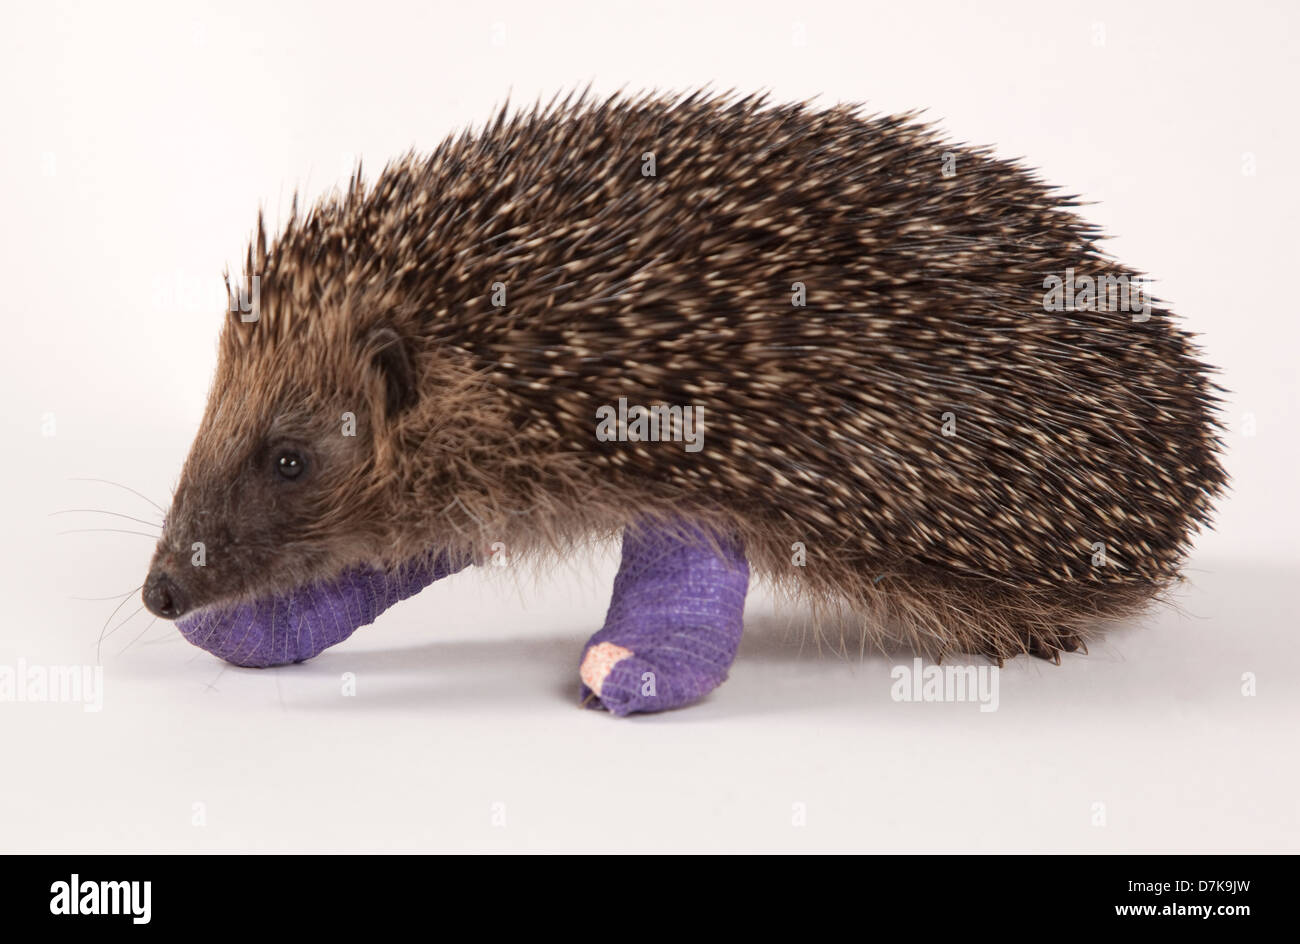 European Hedgehog with bandages on two broken legs - Stock Image